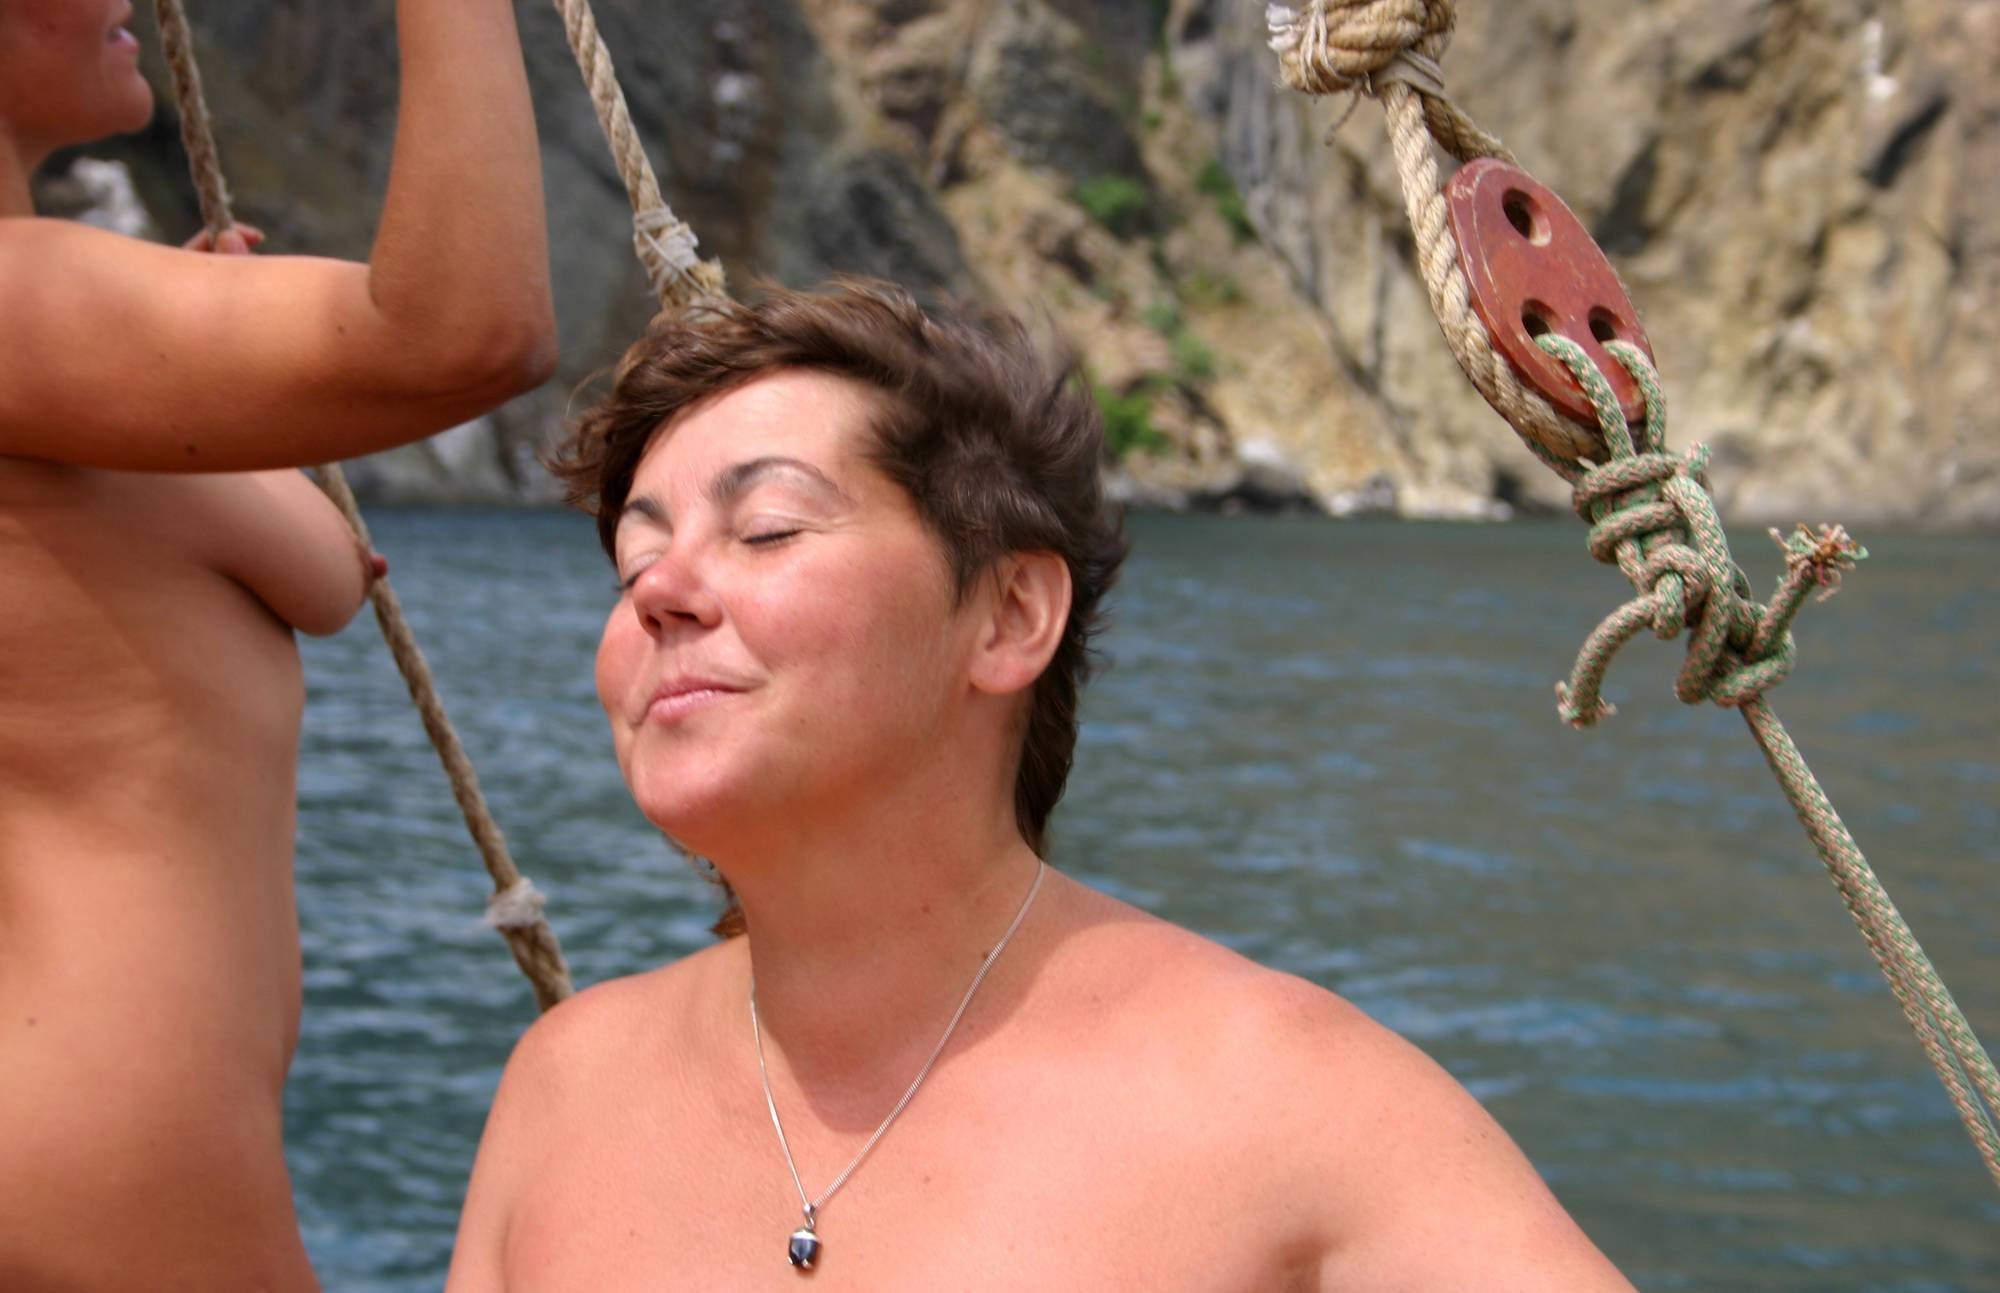 Nudist Photos Boating Sail and Relaxation - 1